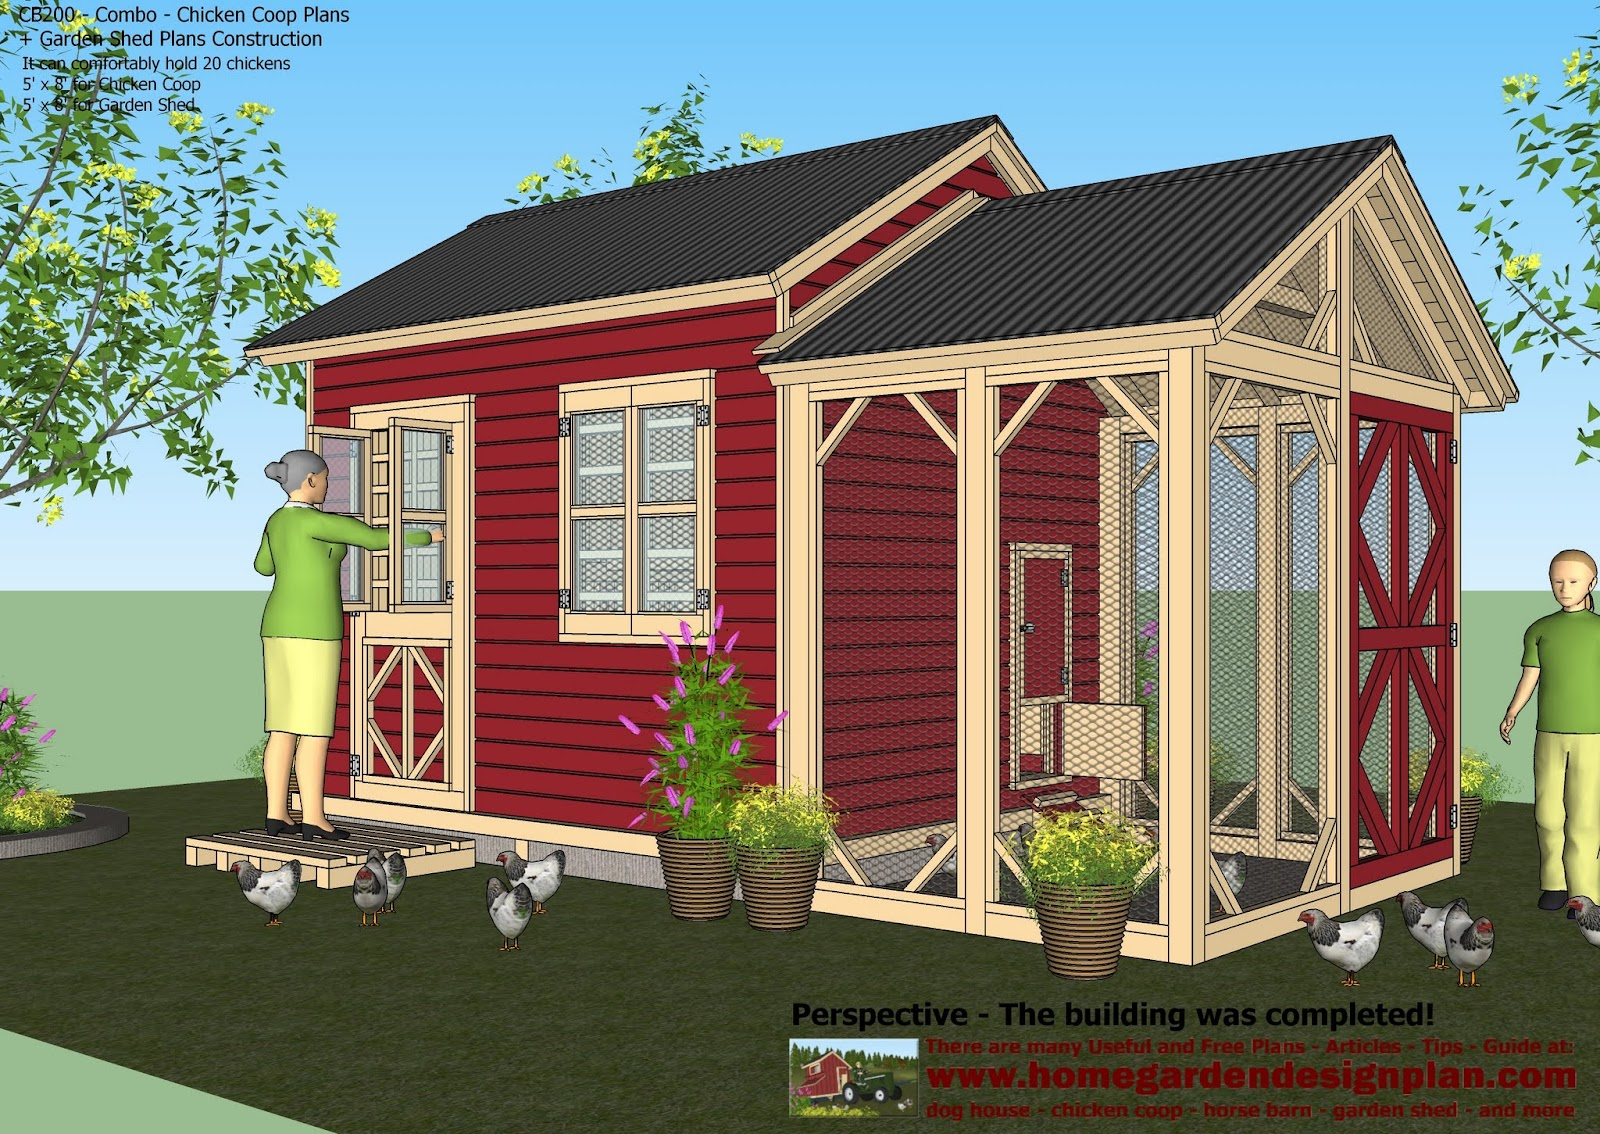 storage shed chicken coop - Chicken Co Op Plans And Greenhouse